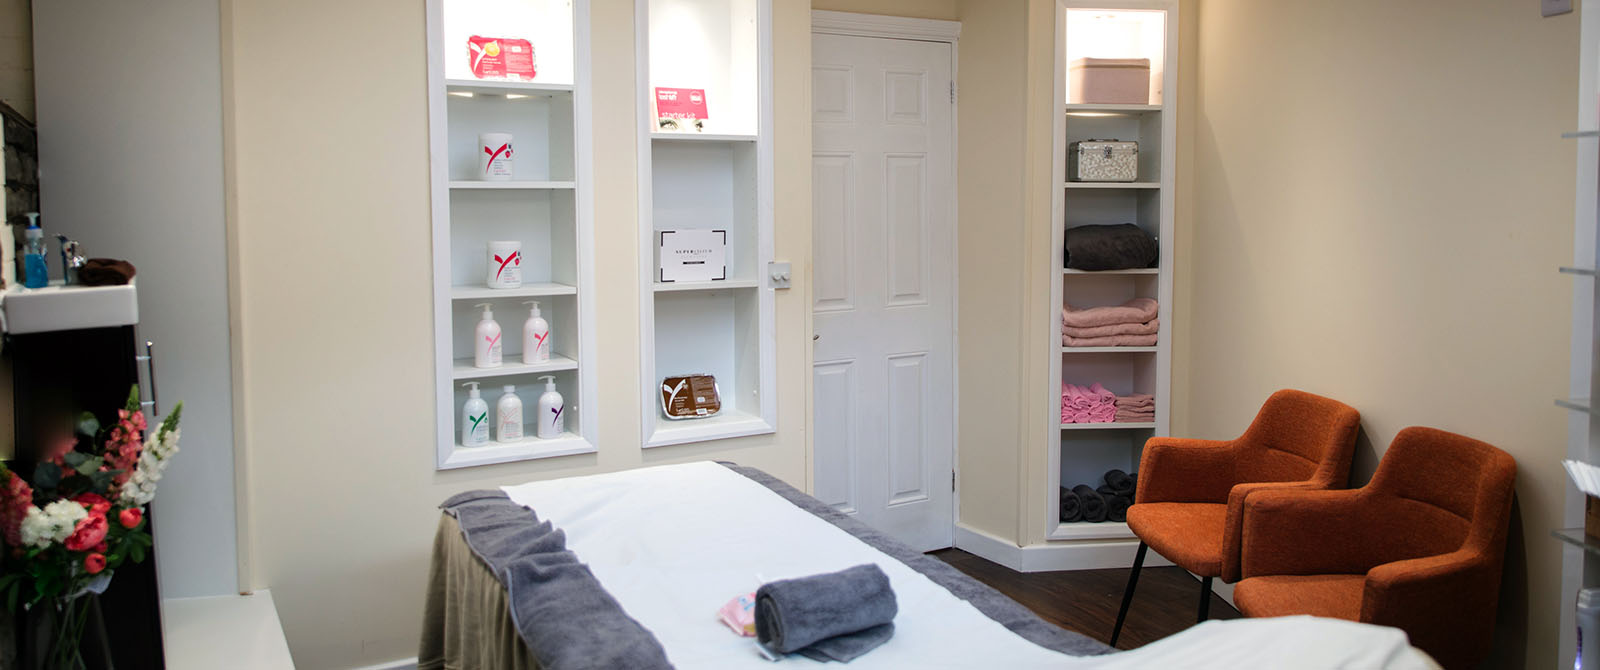 Lycon waxing Penarth - hair removal specialists near Cardiff